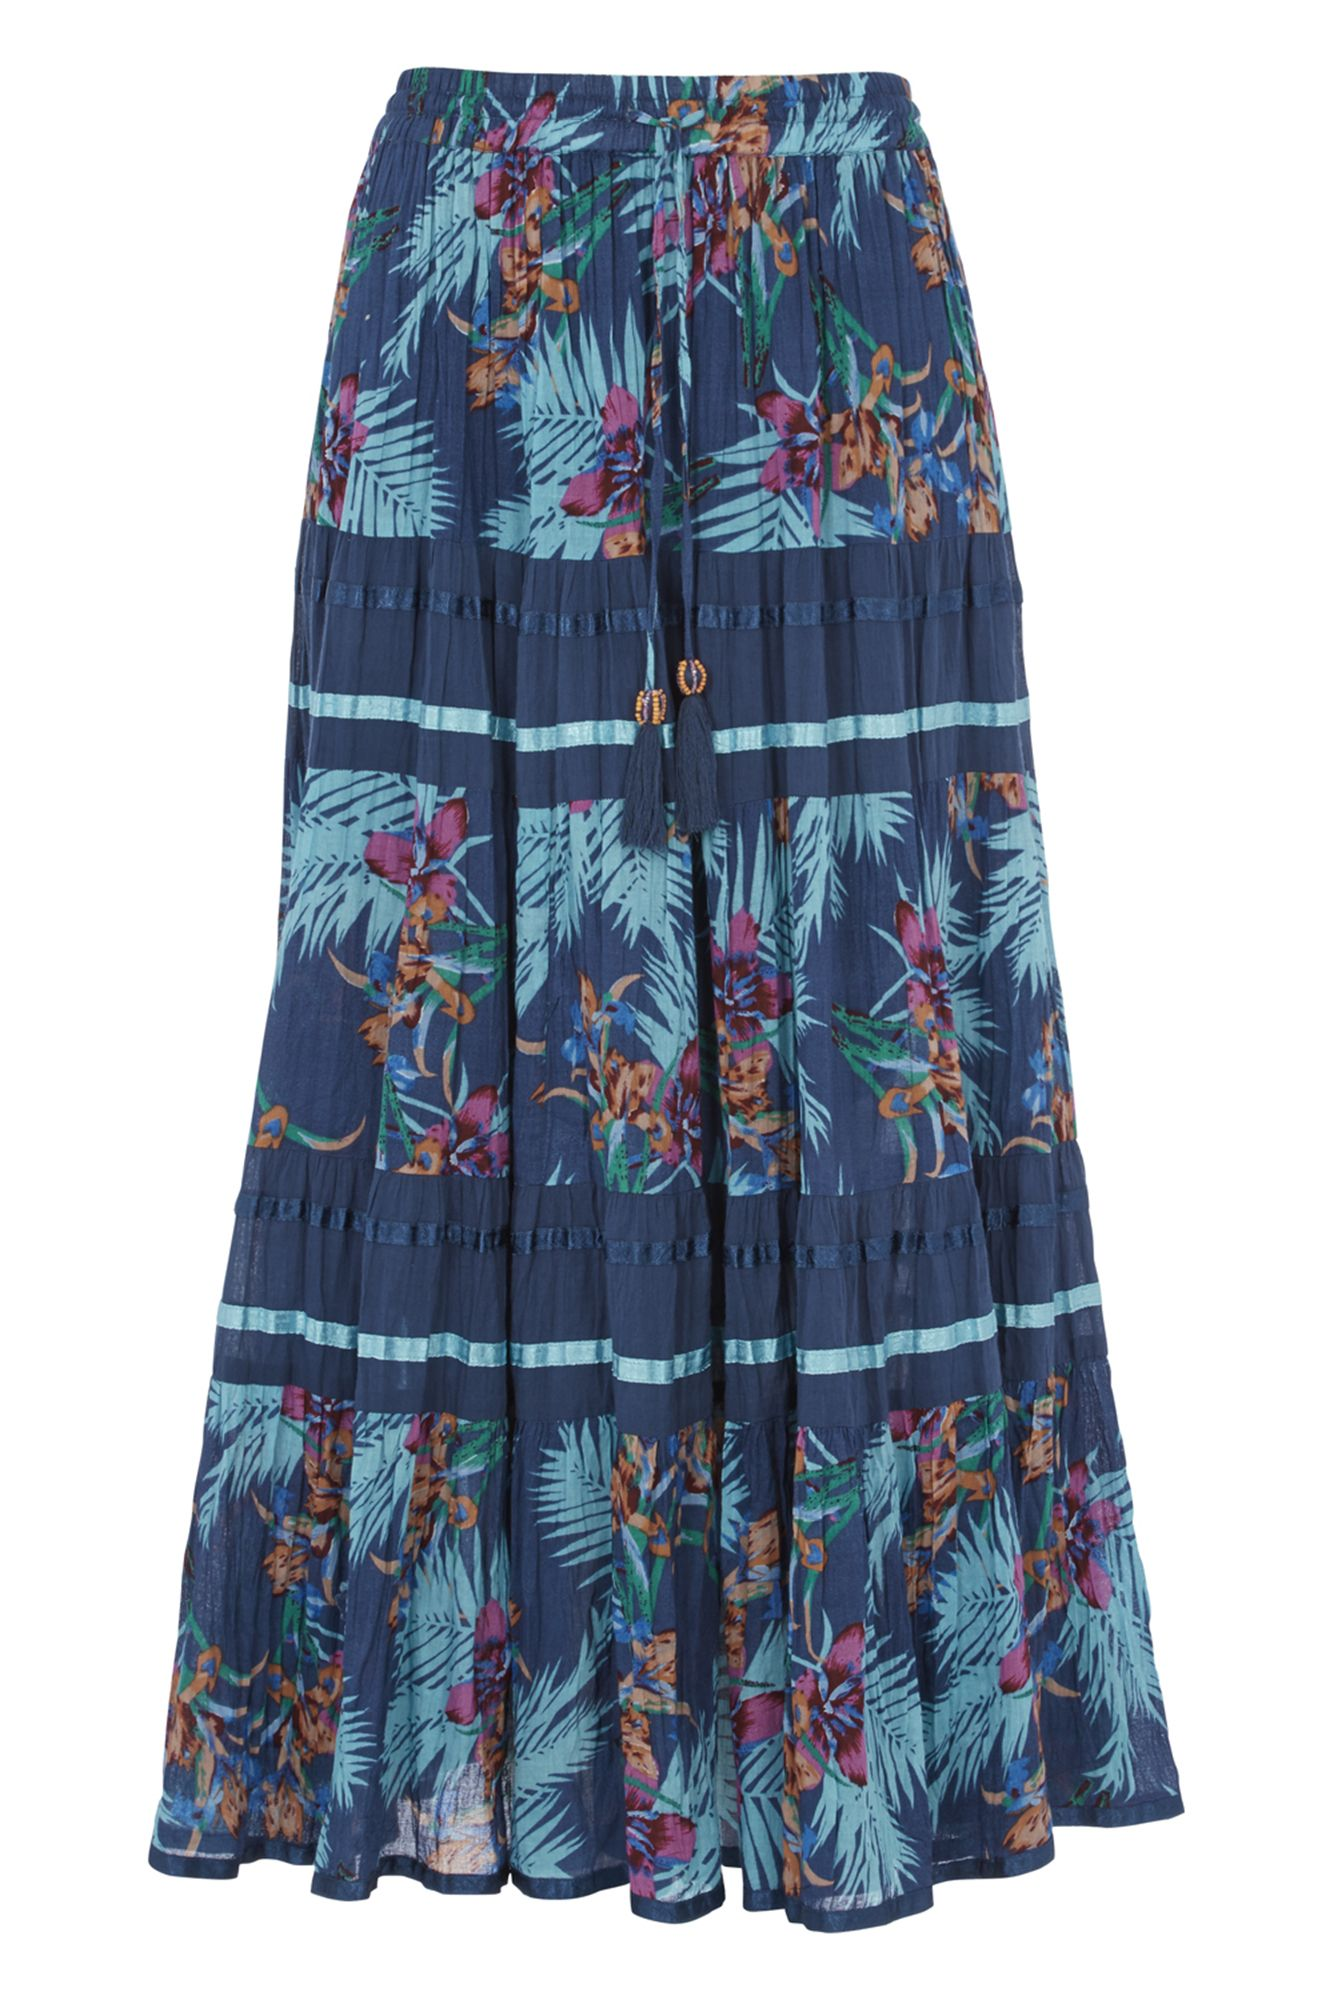 Roman Originals Tropical Print Tiered Maxi Skirt, Blue